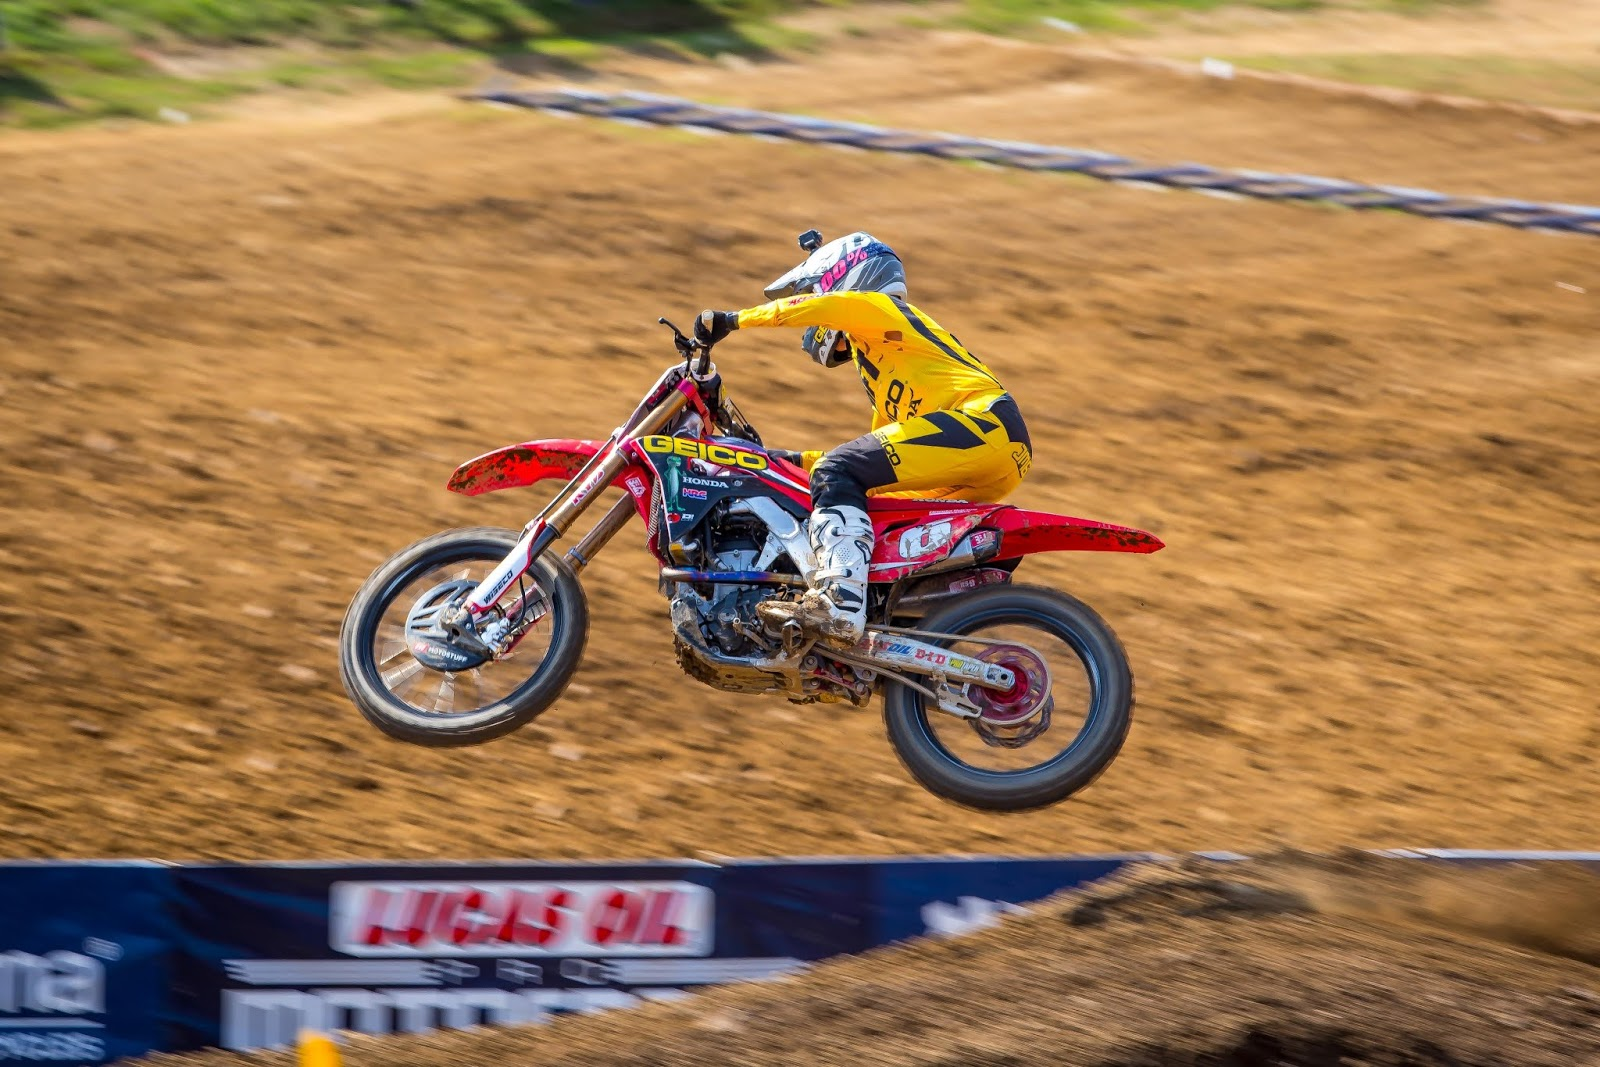 ... PA (June 16, 2018) U2013 For The Second Straight Race, It Appeared GEICO  Hondau0027s Jeremy Martin Was In Control Of The 250 Class Of Lucas Oil Pro  Motocross.